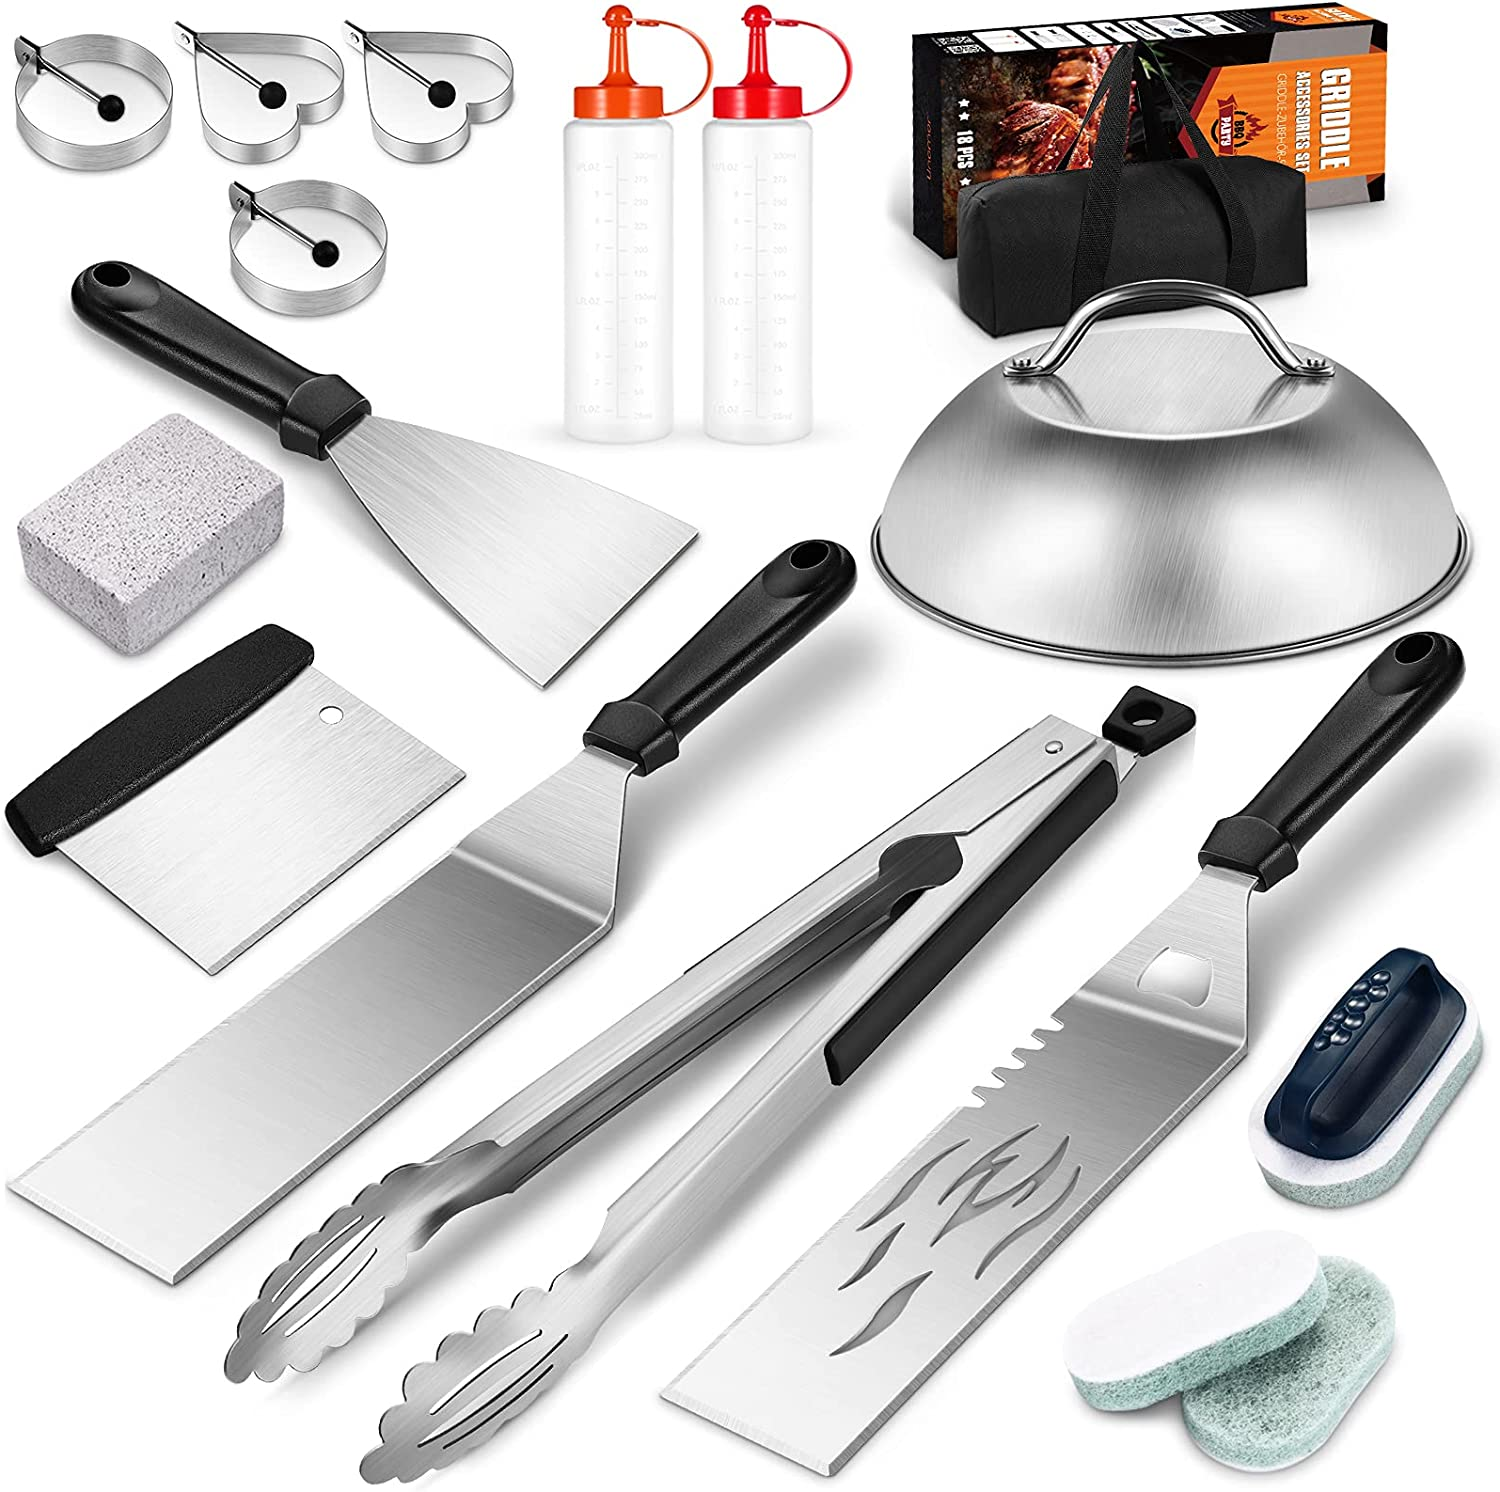 Now on sale VALICLUD Quality inspection 18pcs Barbecue Tool Sets Accessories for Grill Outdoor